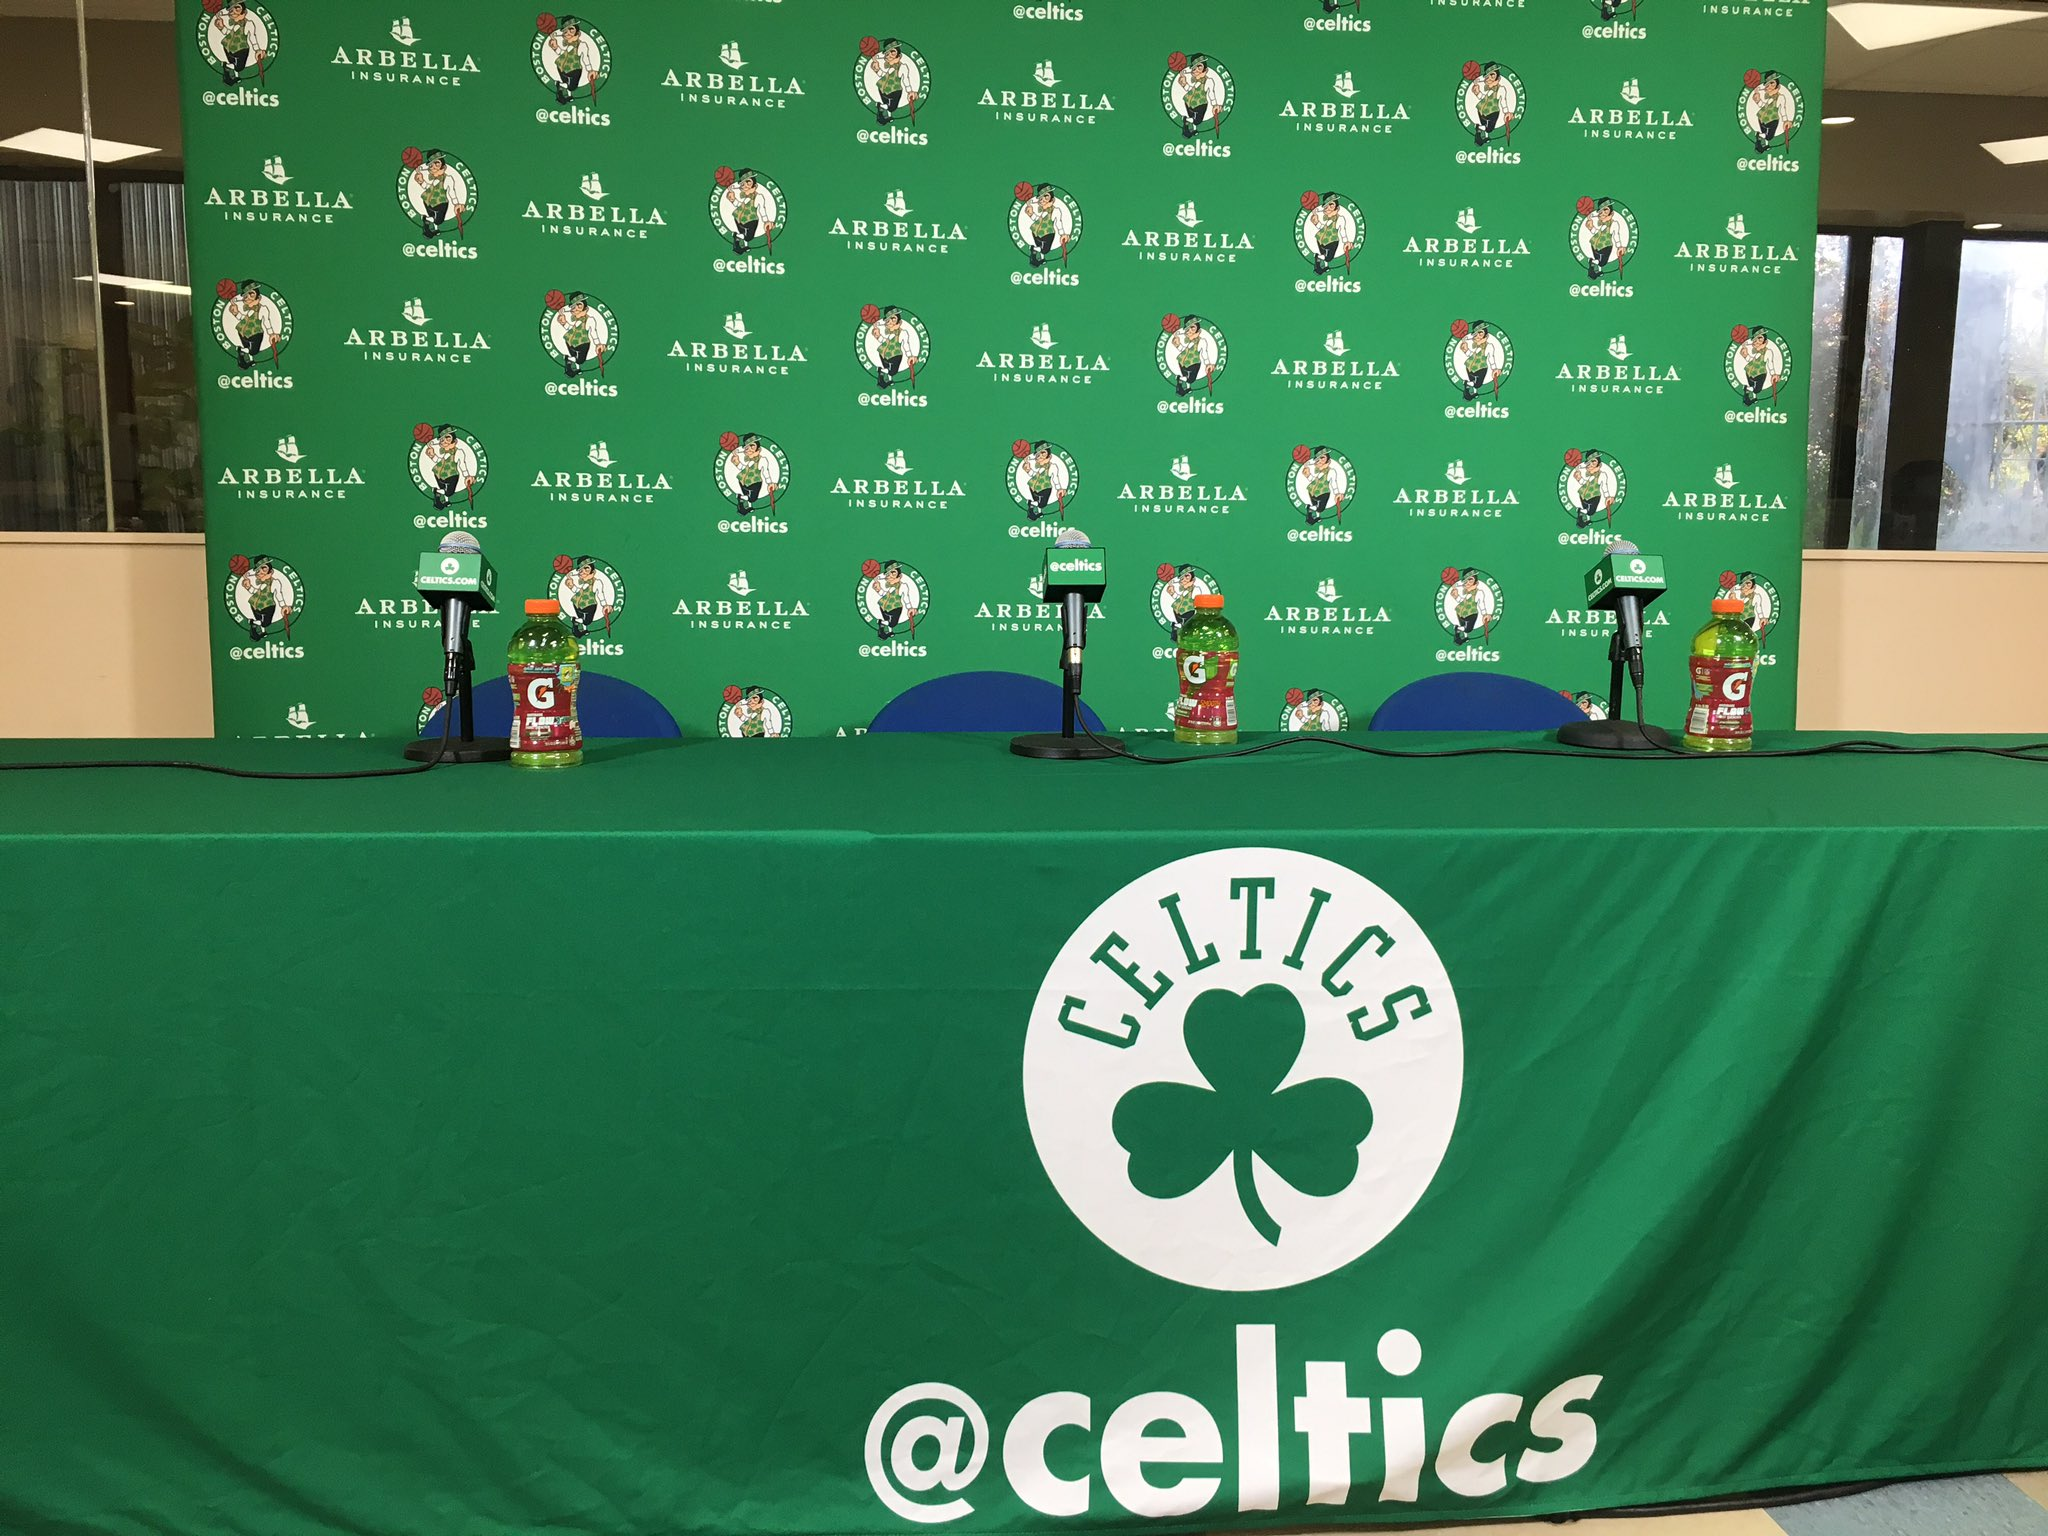 Soon... #CelticsMediaDay live from Boston! #NBAMediaDay https://t.co/AbEITkyZU1